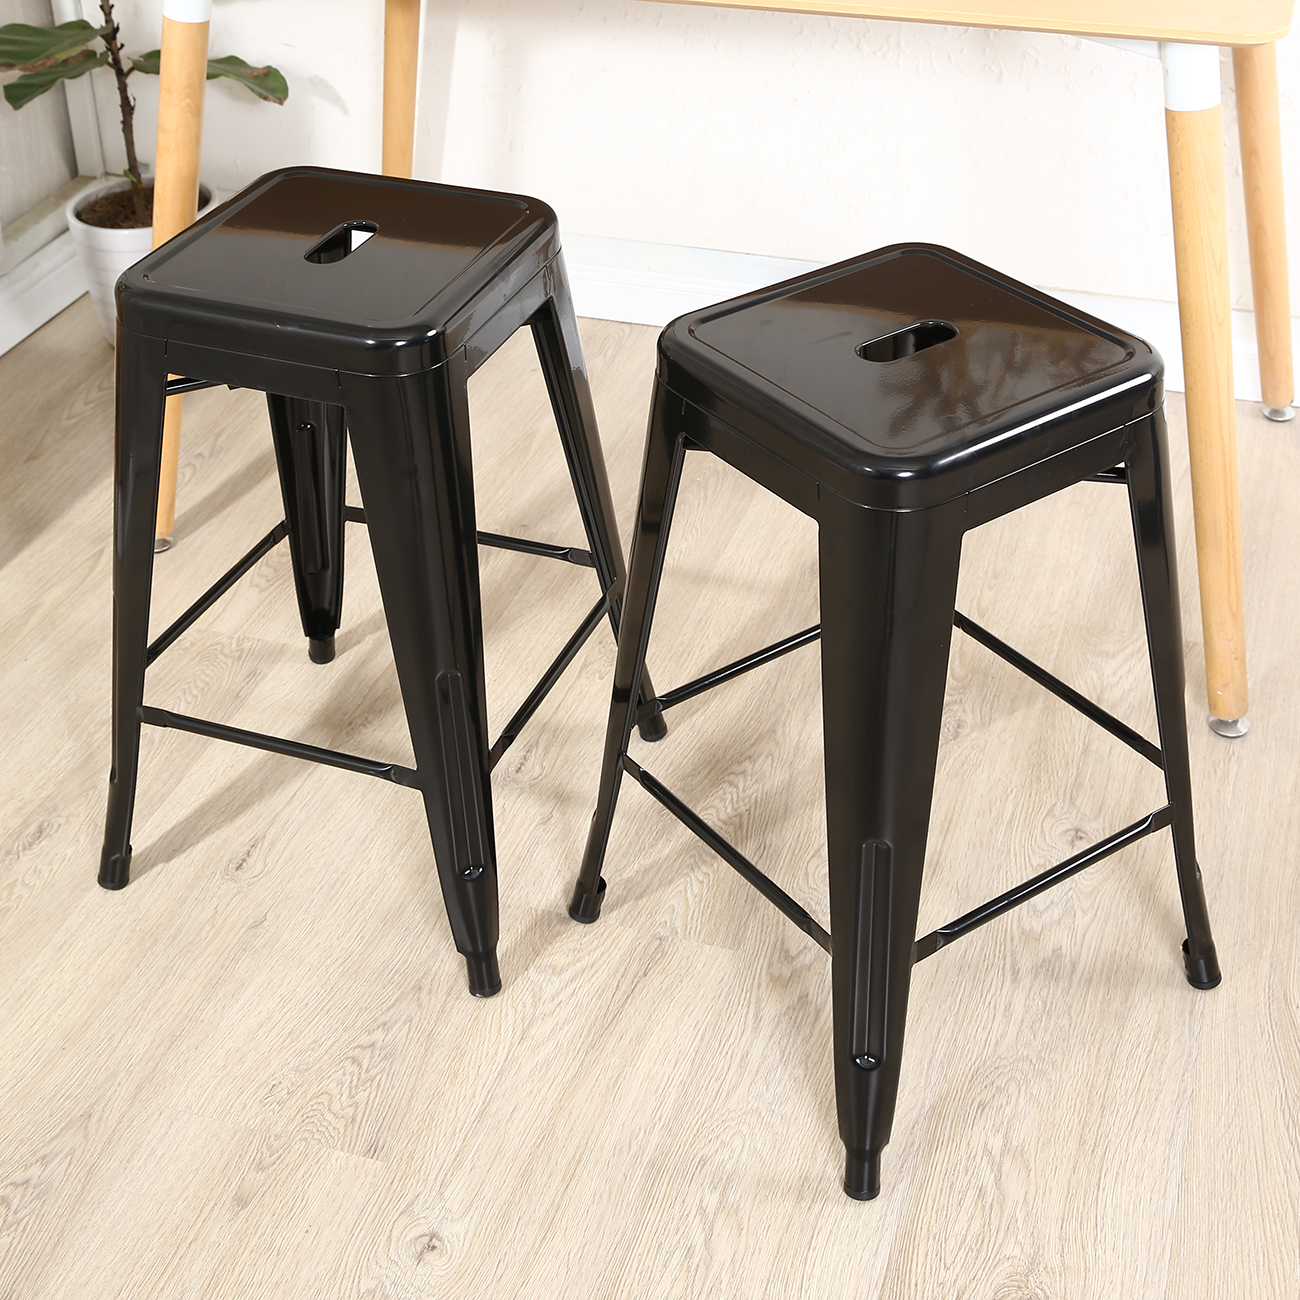 Set of 2 Metal Bar Stool Counter Height Home 24quot 26quot 30  : 014 hg 30024 bk 14 from www.ebay.com size 1300 x 1300 jpeg 1196kB